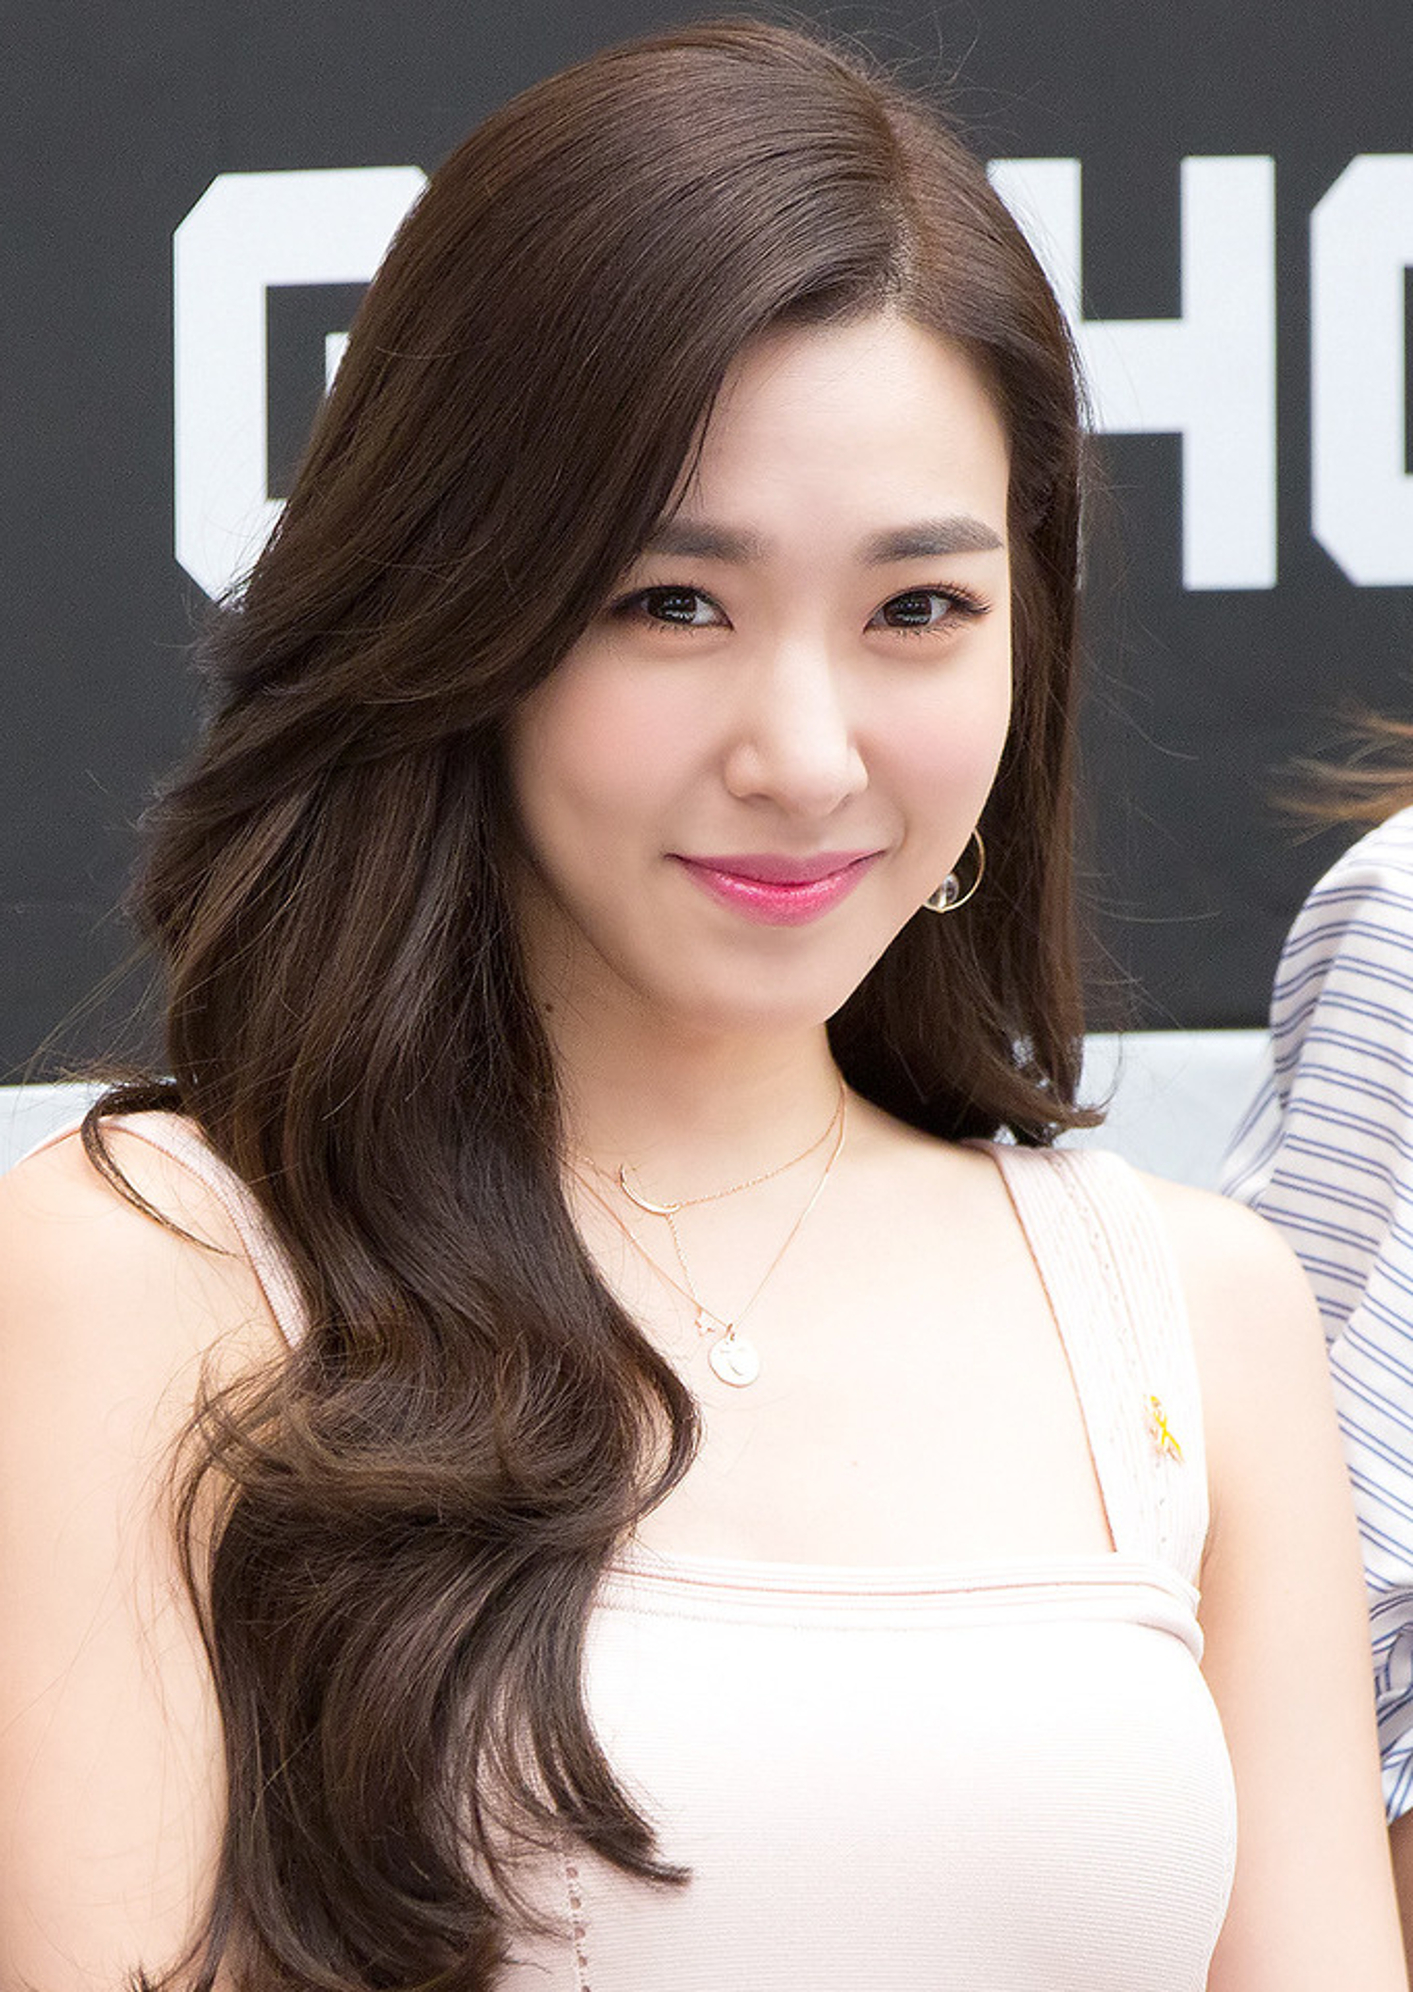 Wallpaper For Girls Iphone File Tiffany Hwang At Starfield Hanam G Shock Fan Signing